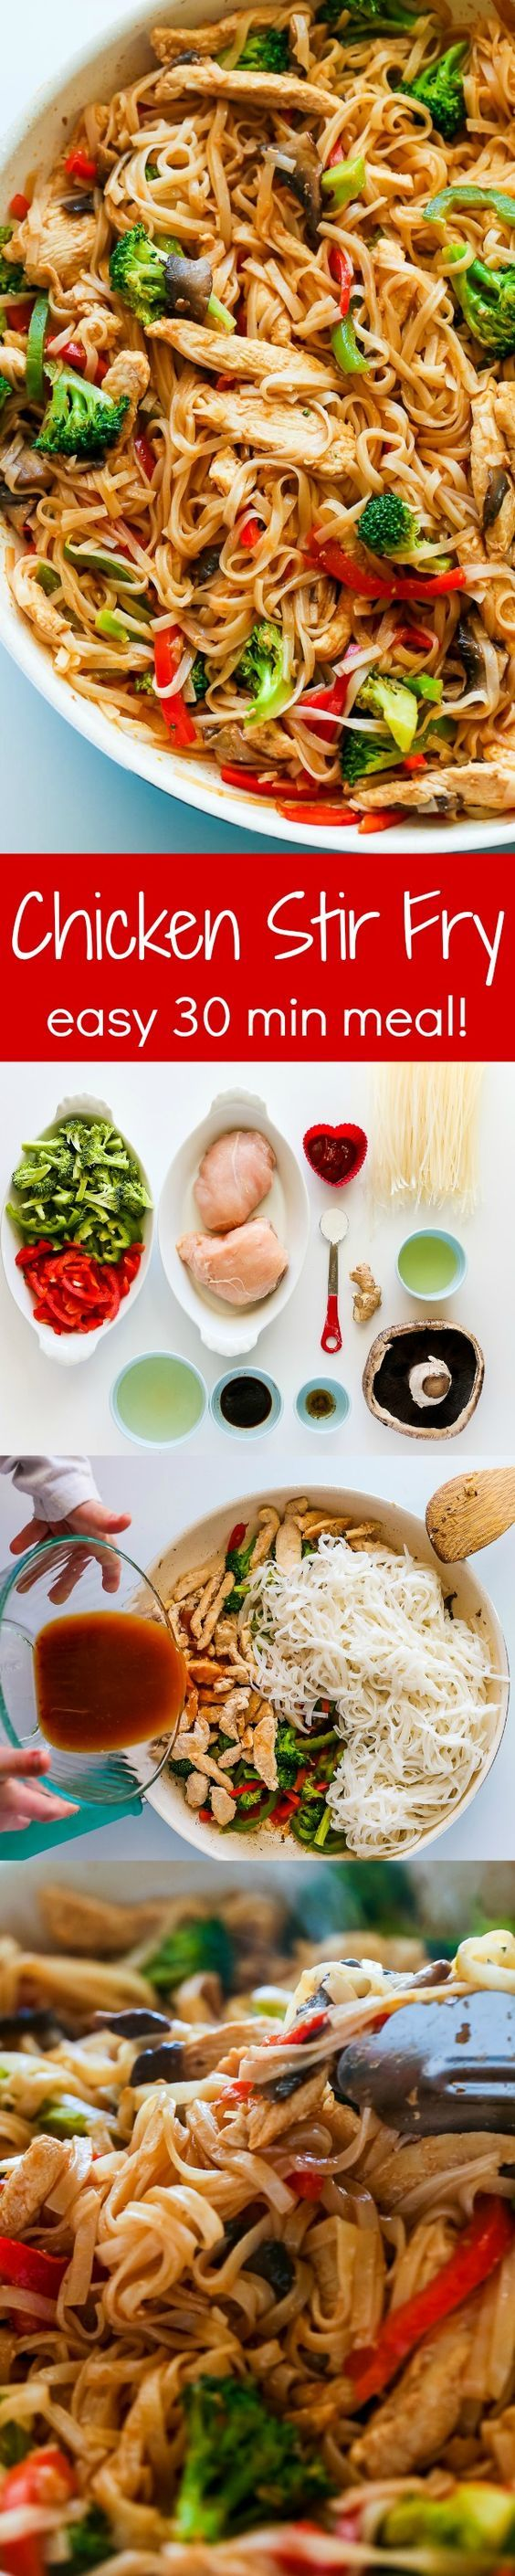 how to cook rice noodles in stir fry